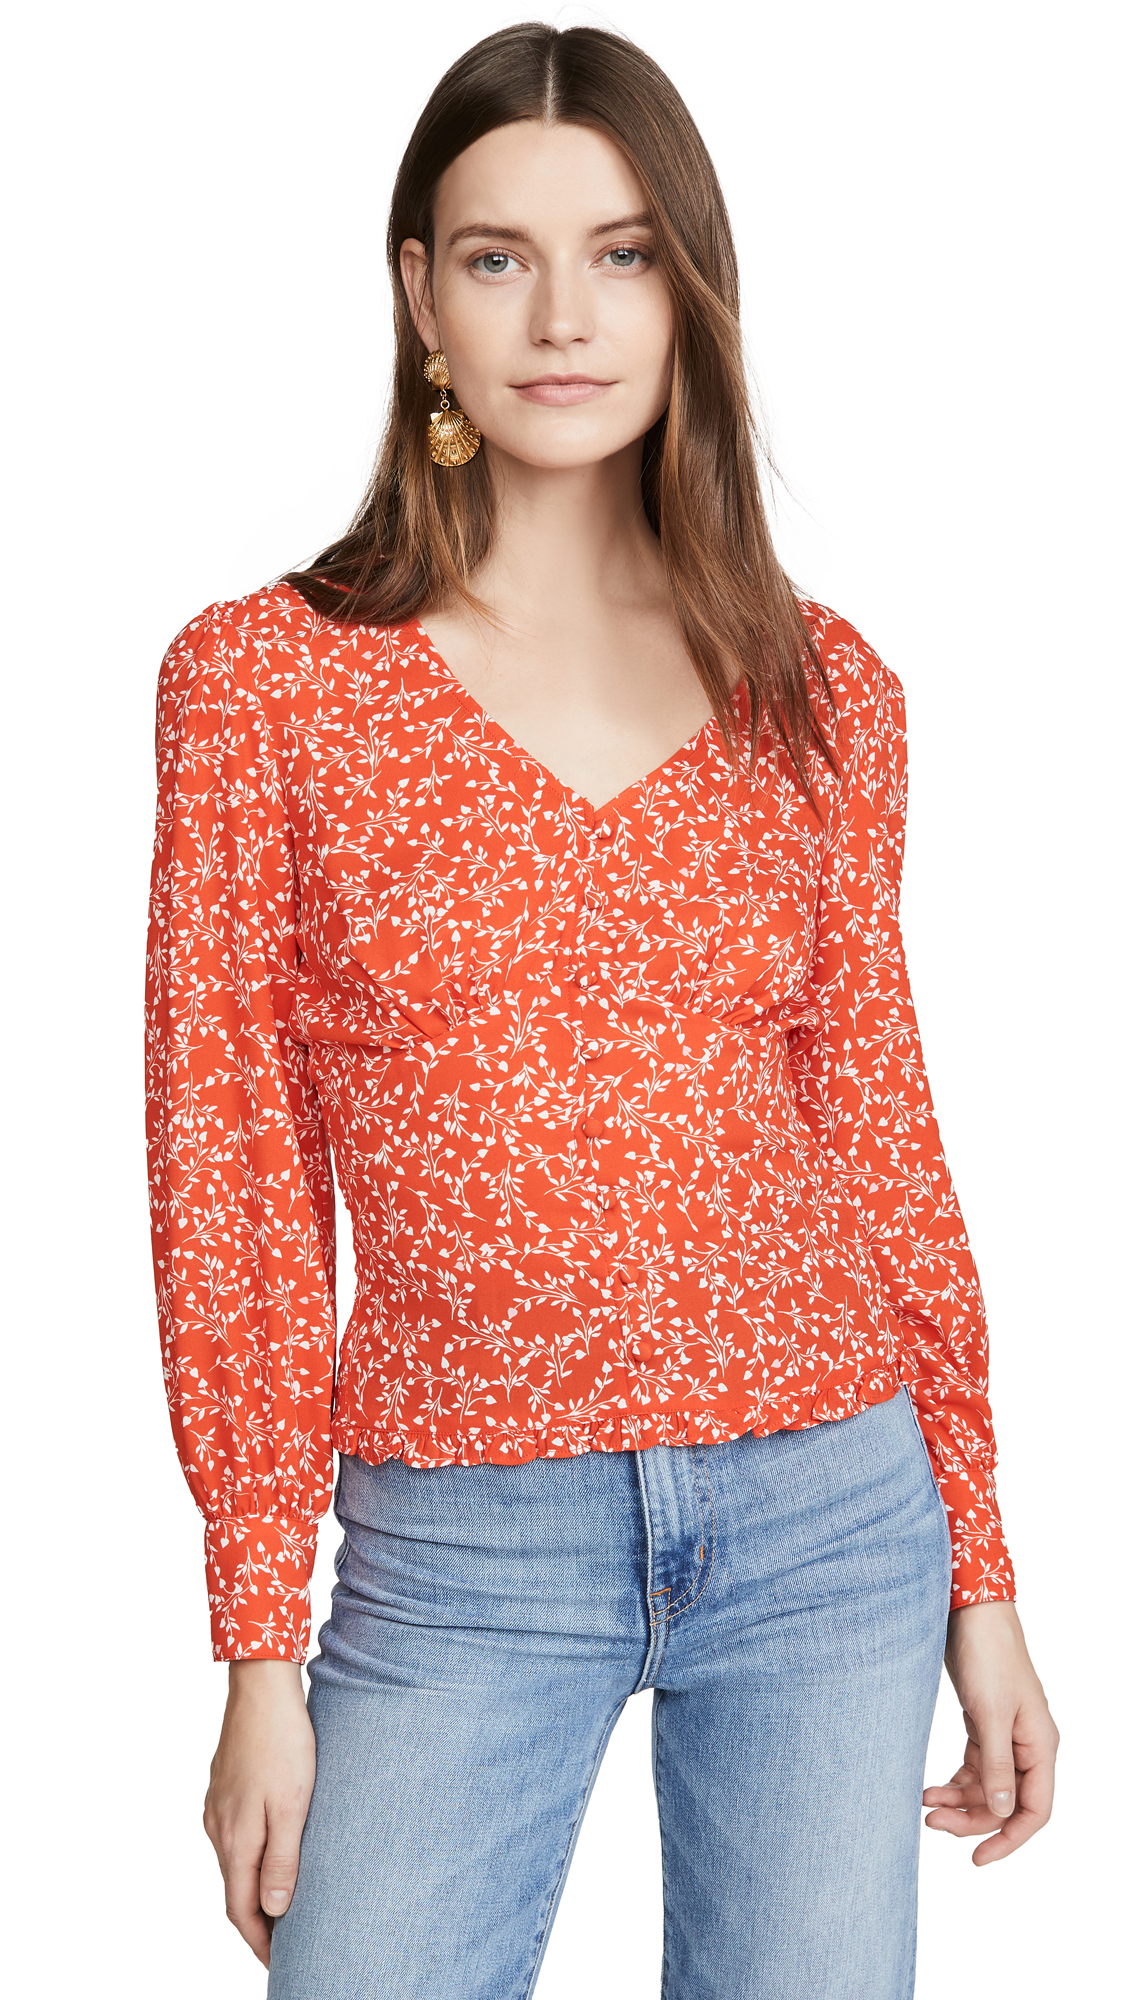 cupcakes and cashmere Portia Top - 40% Off Sale